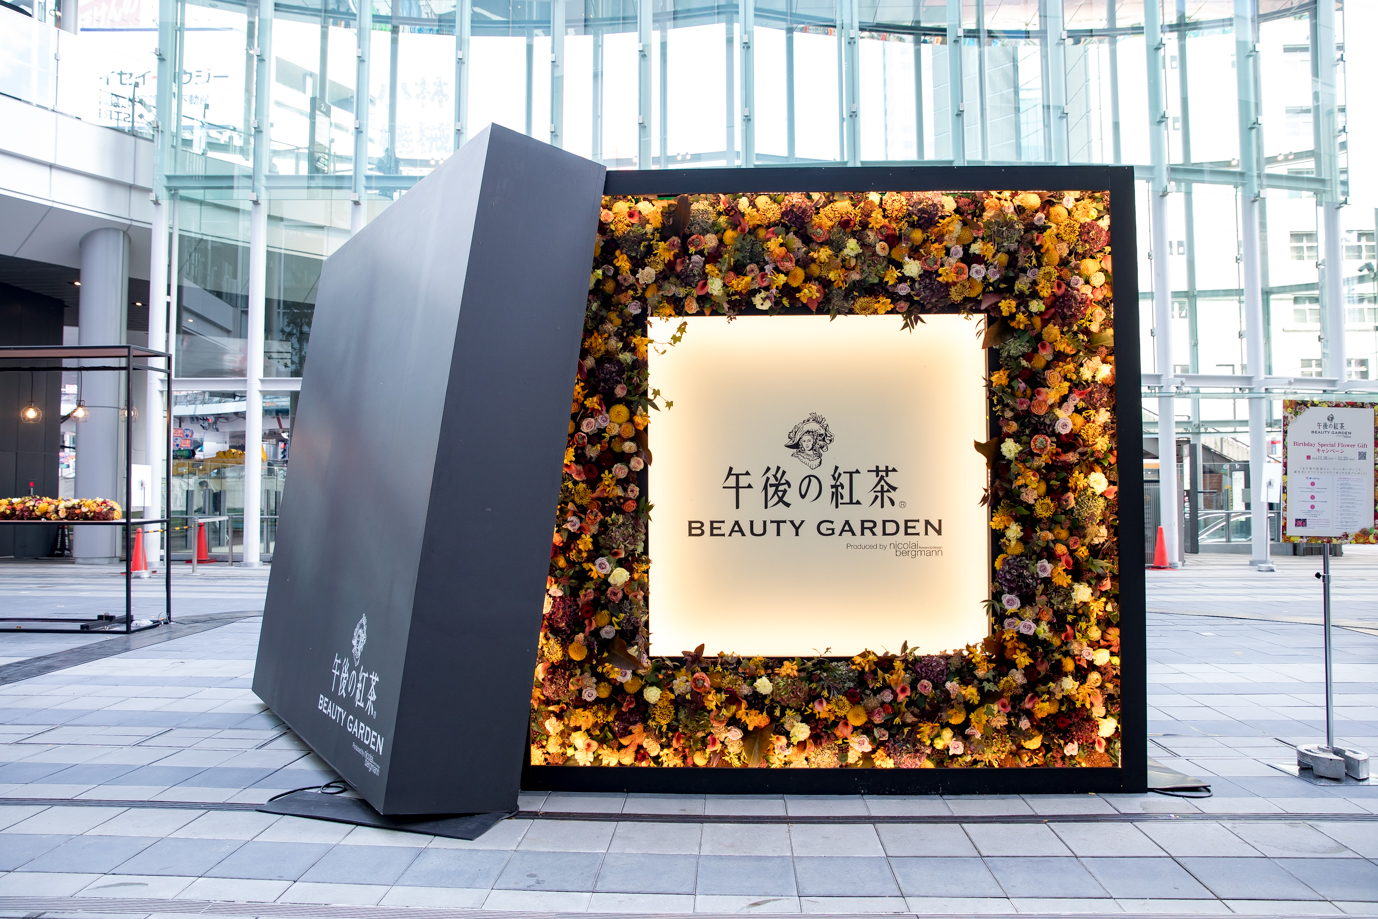 「午後の紅茶 BEAUTY GARDEN produced by Nicolai Bergmann Flowers & Design」を開催